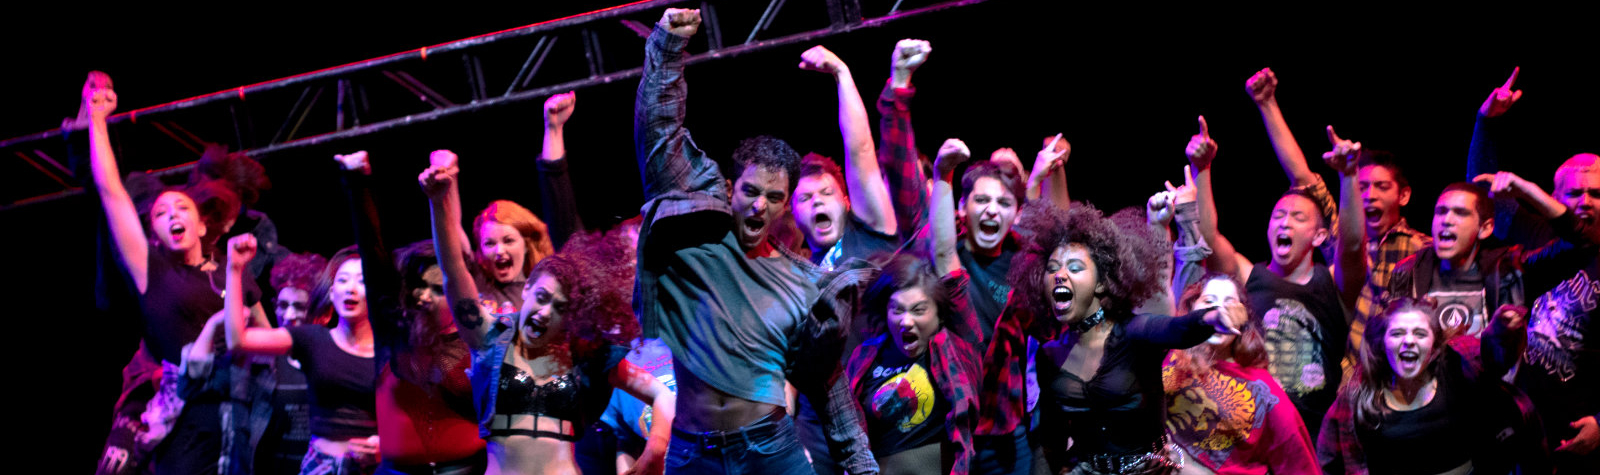 American Idiot Performance - Photo by Geovanny Lopez photography department